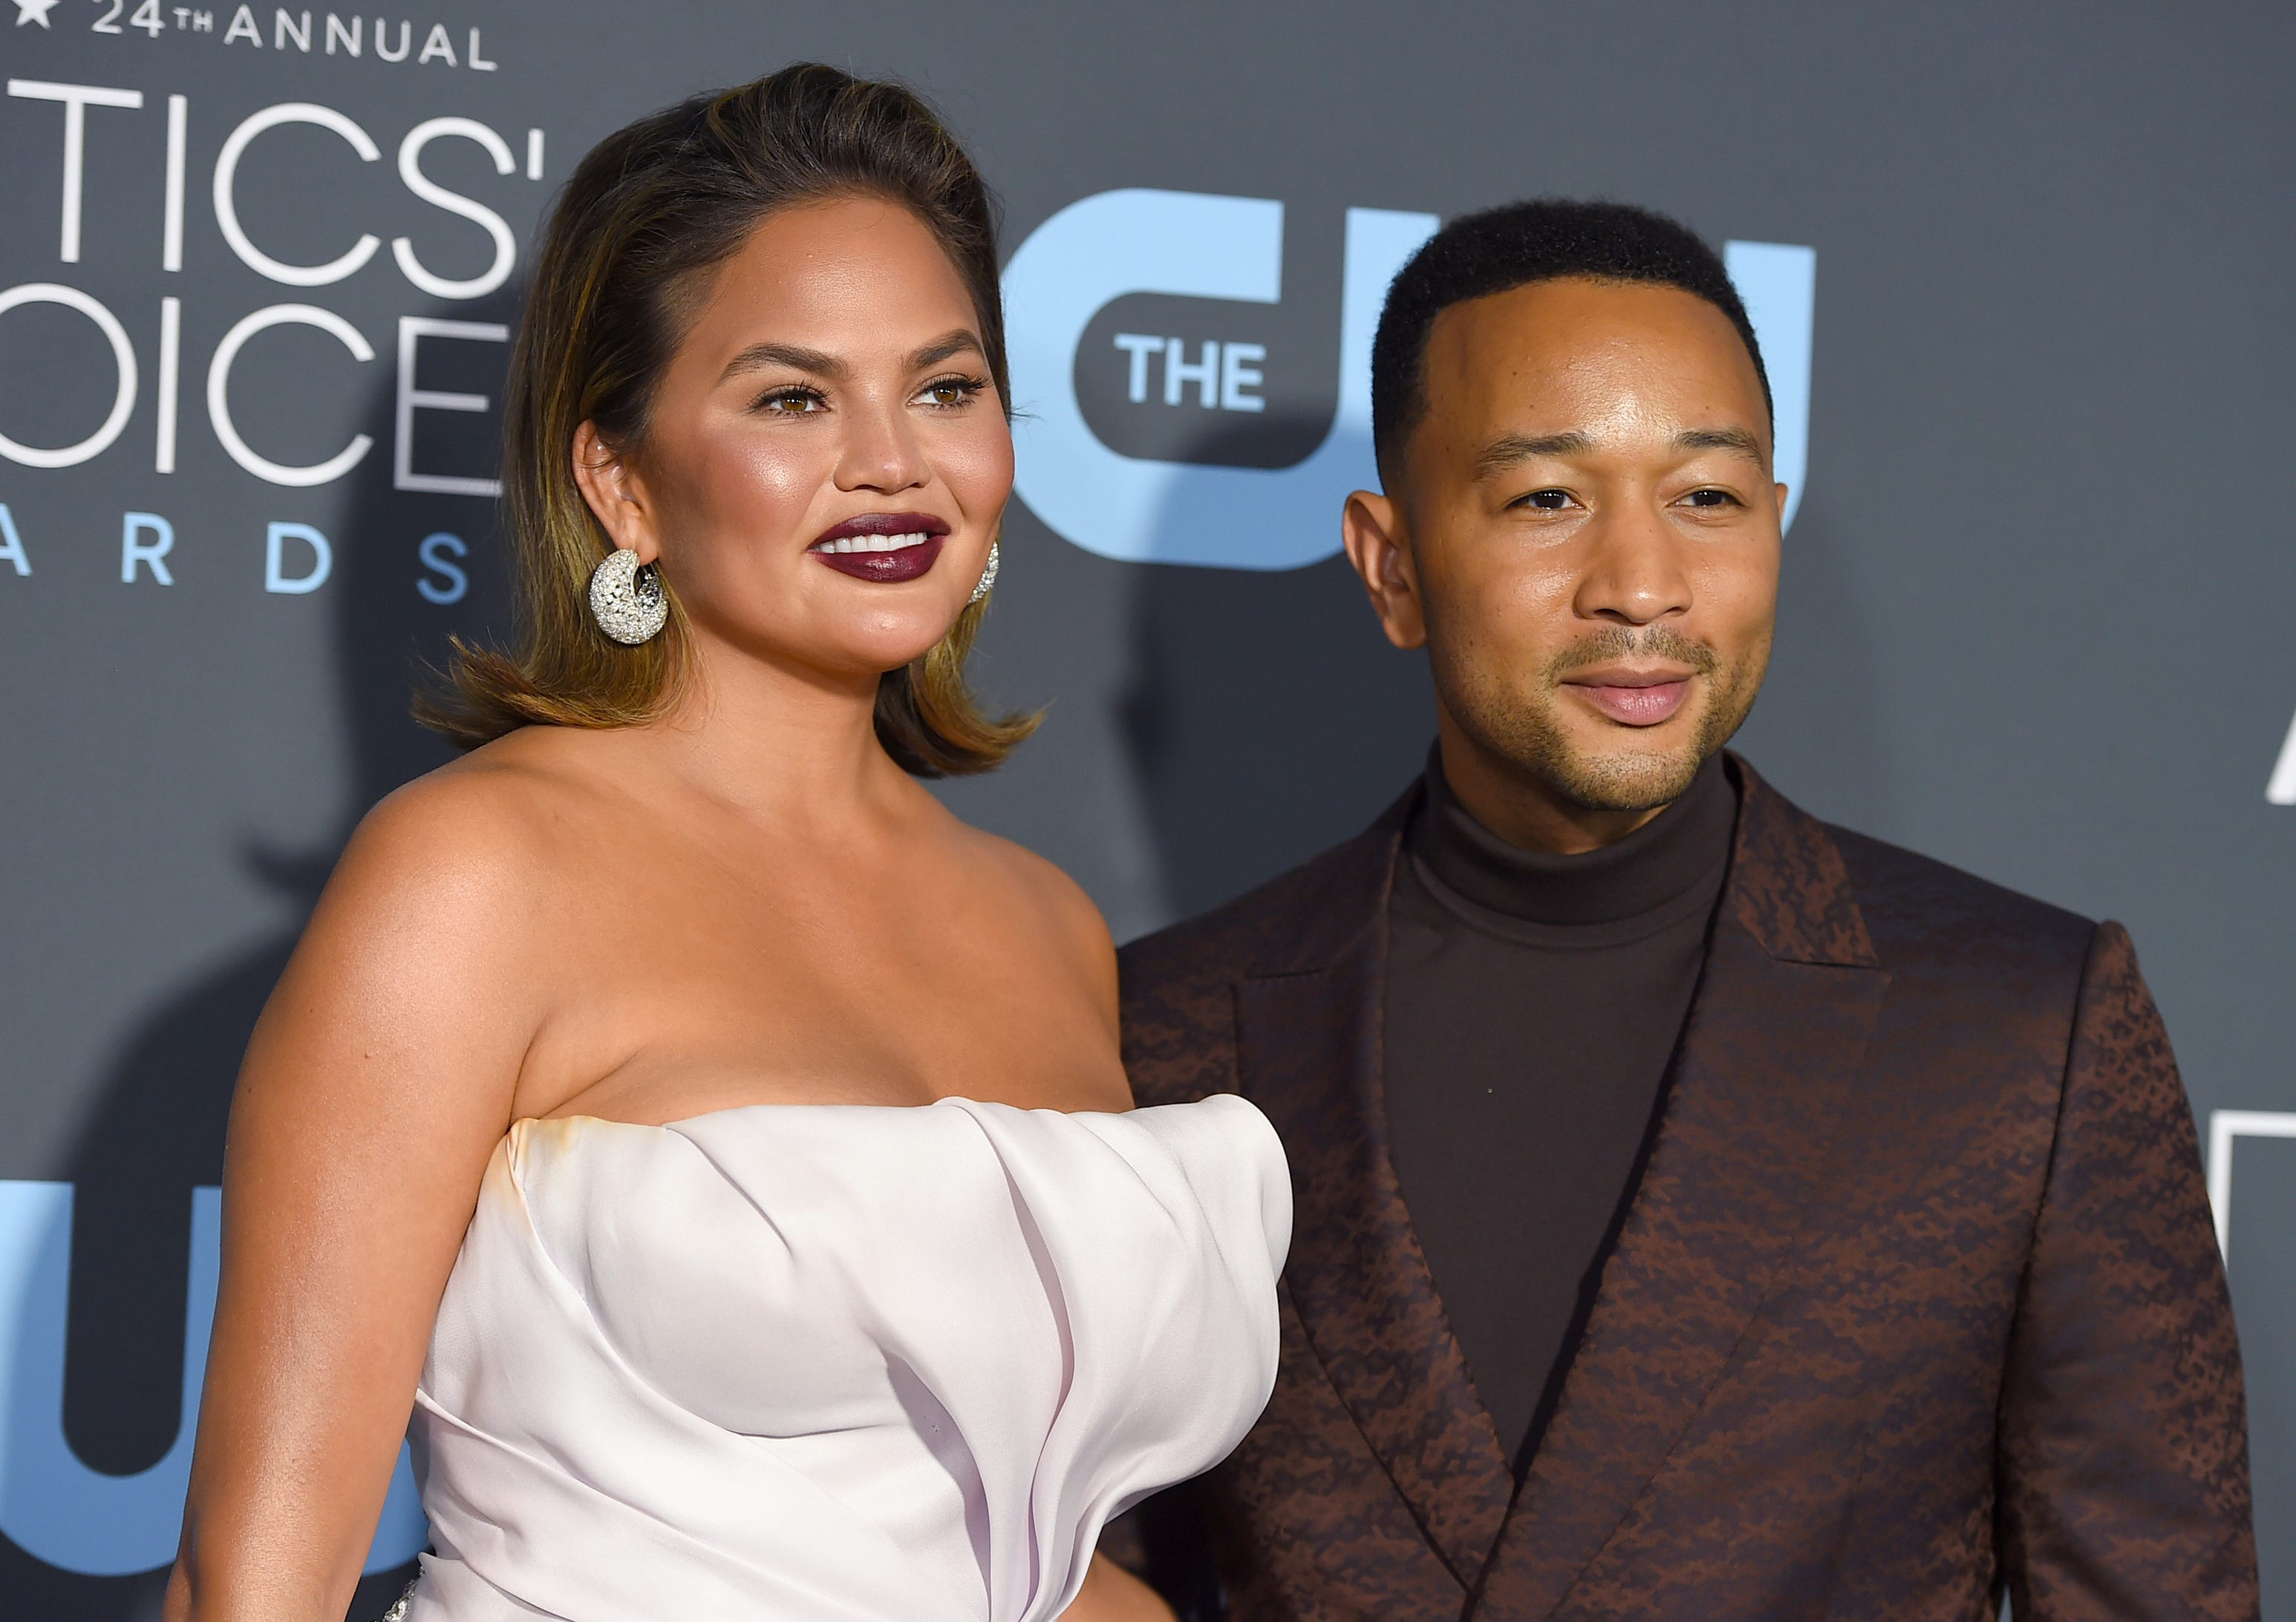 I love my wife more than ever : John Legend, Chrissy Teigen s marriage stronger after loss